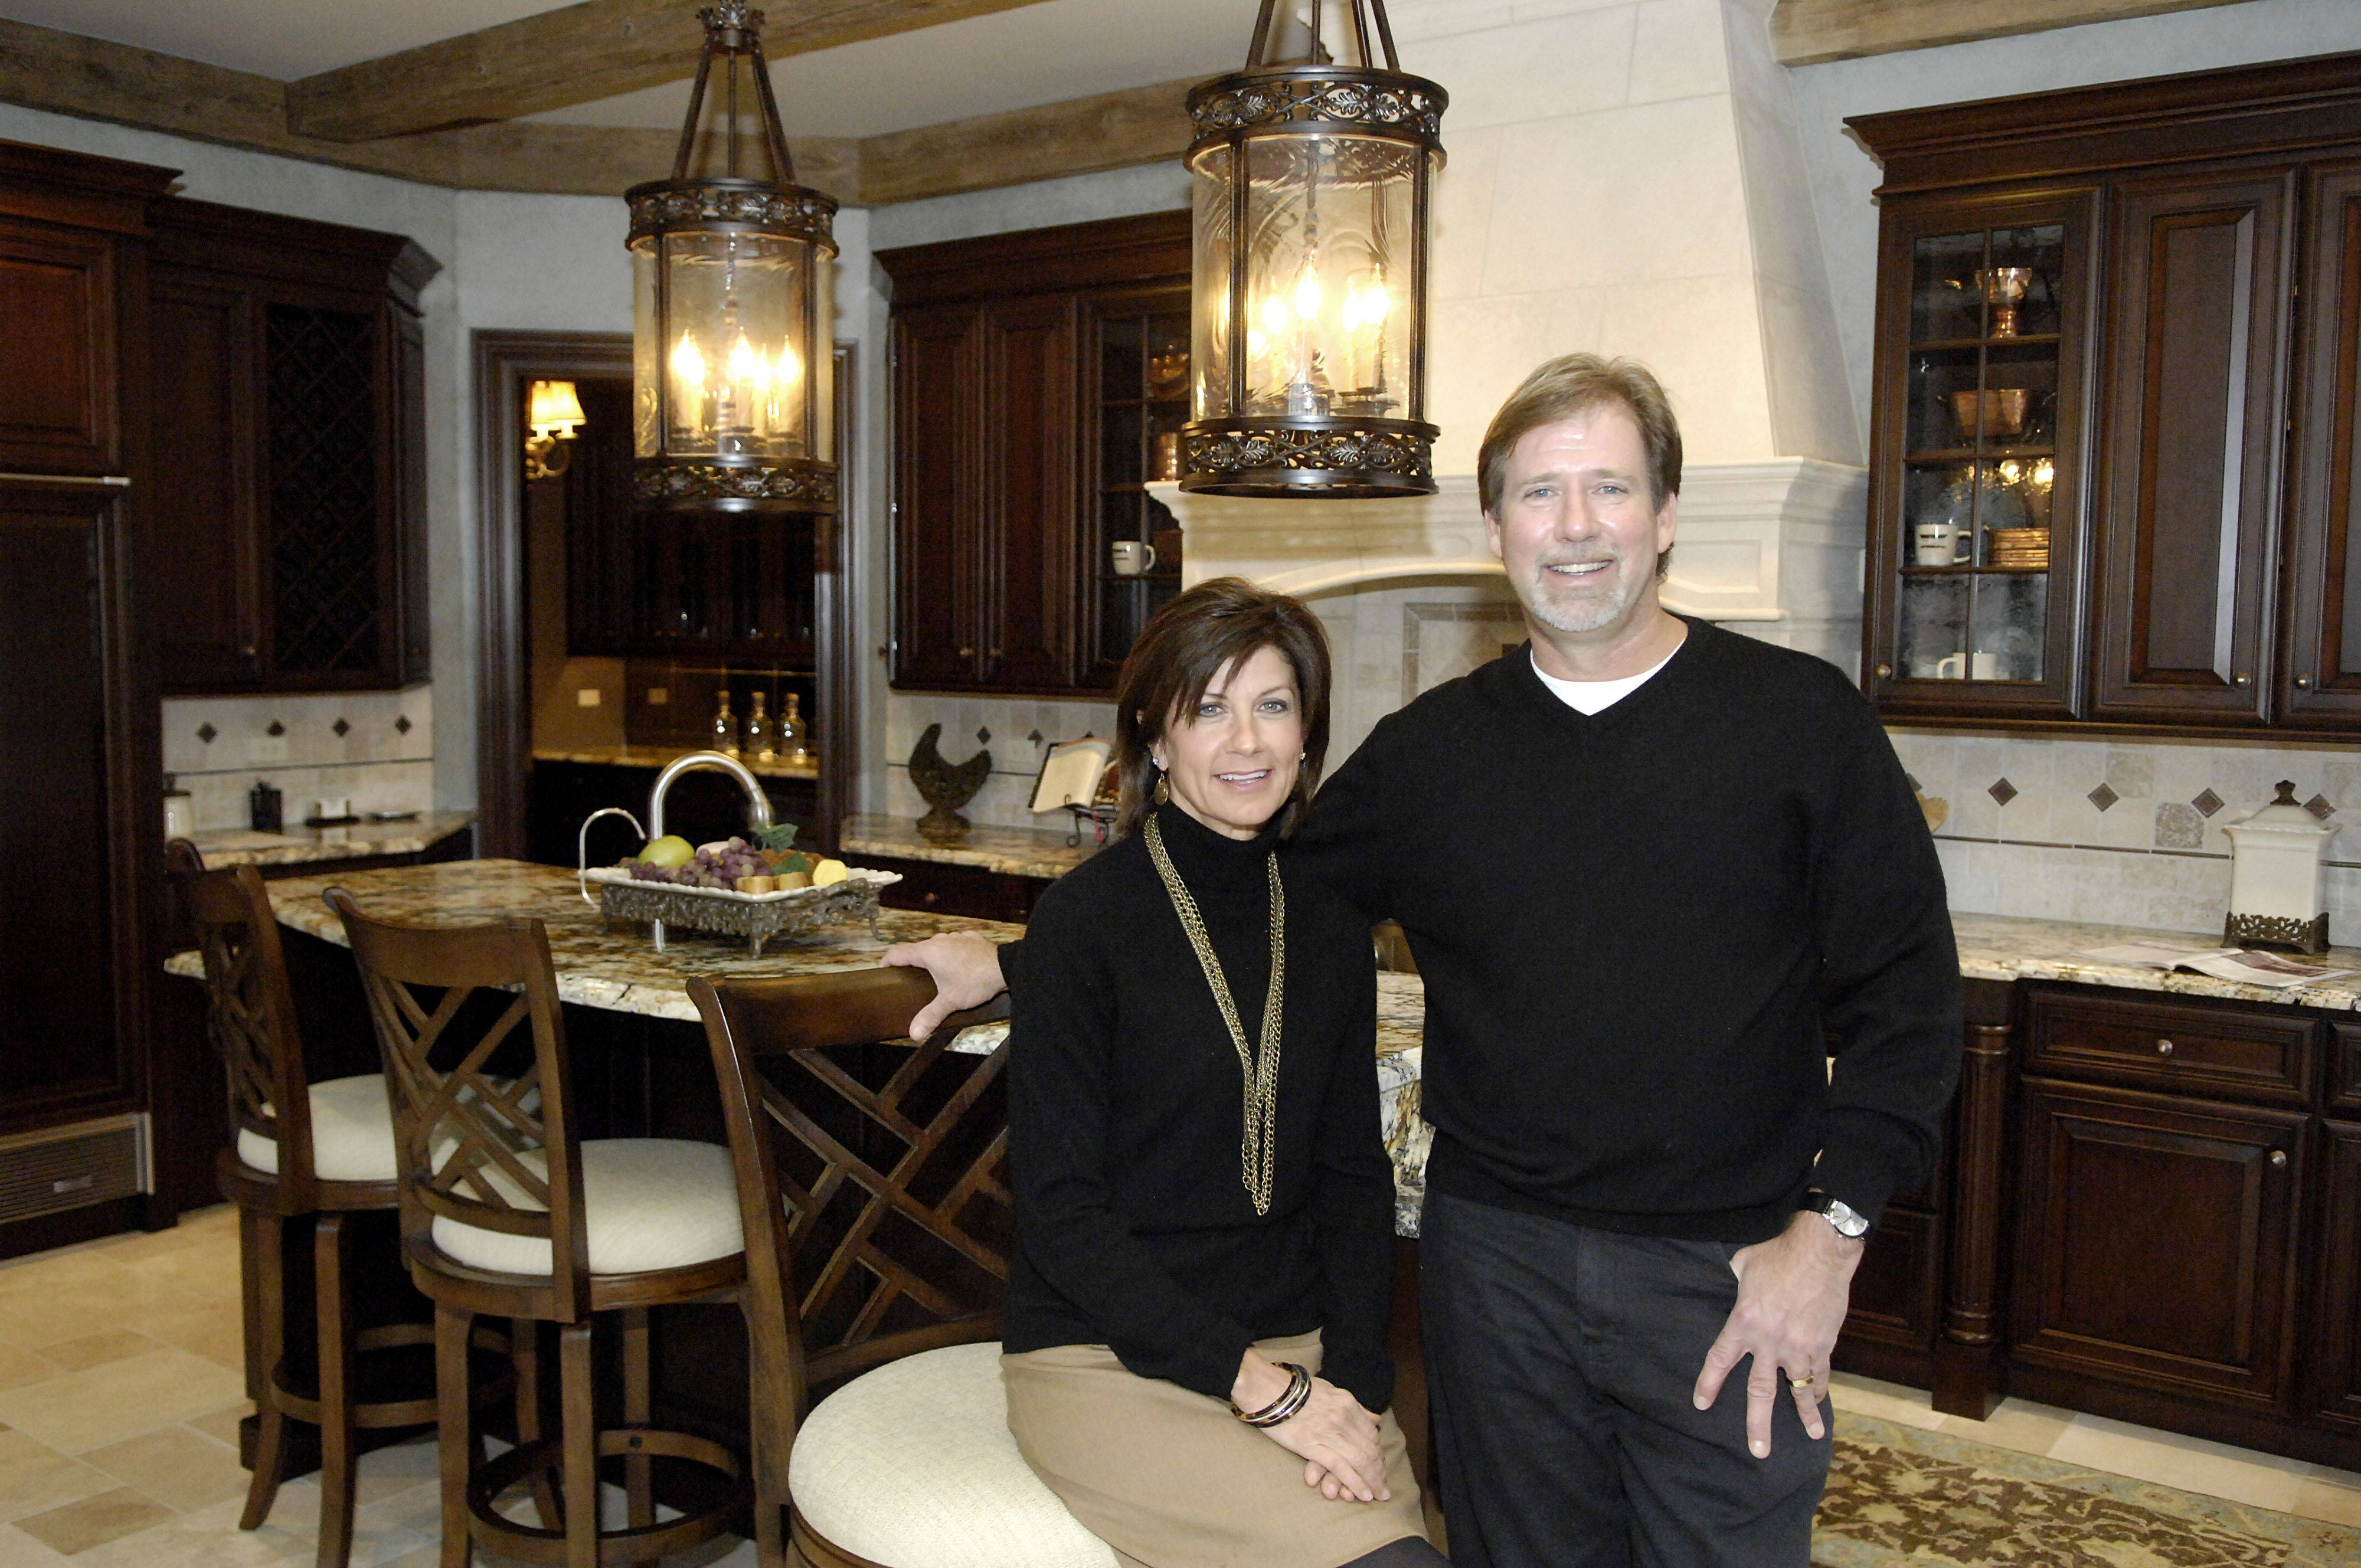 George and Lynn Havlicek of Havlicek Builders in the kitchen of a model at Innisfree in St. Charles. Lynn does the interior design of the homes.